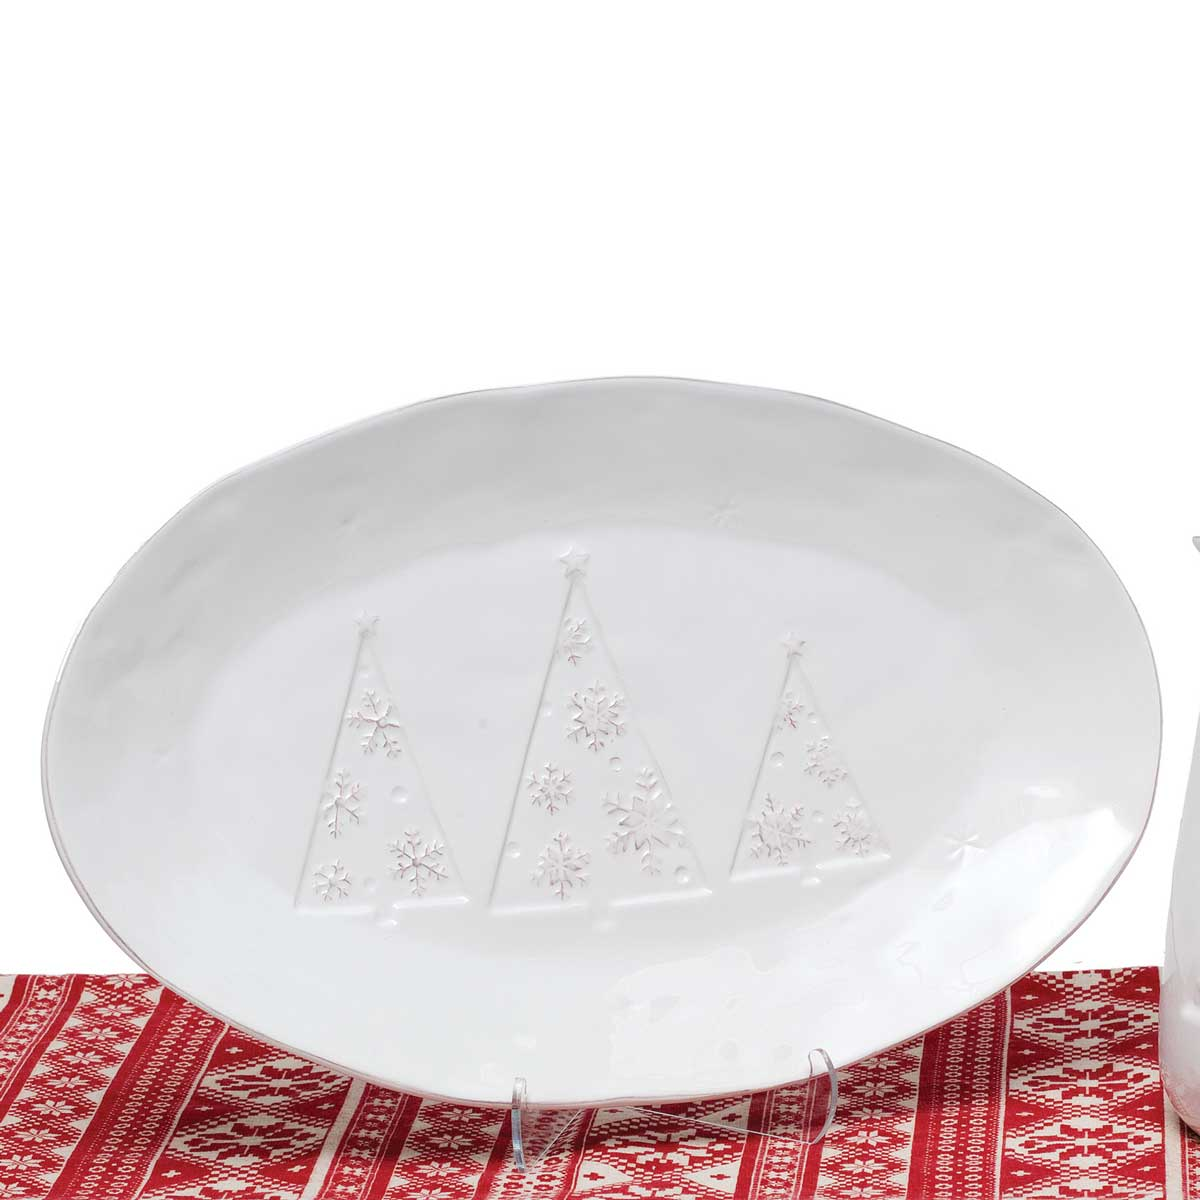 YULETIDE COOKIE PLATTER